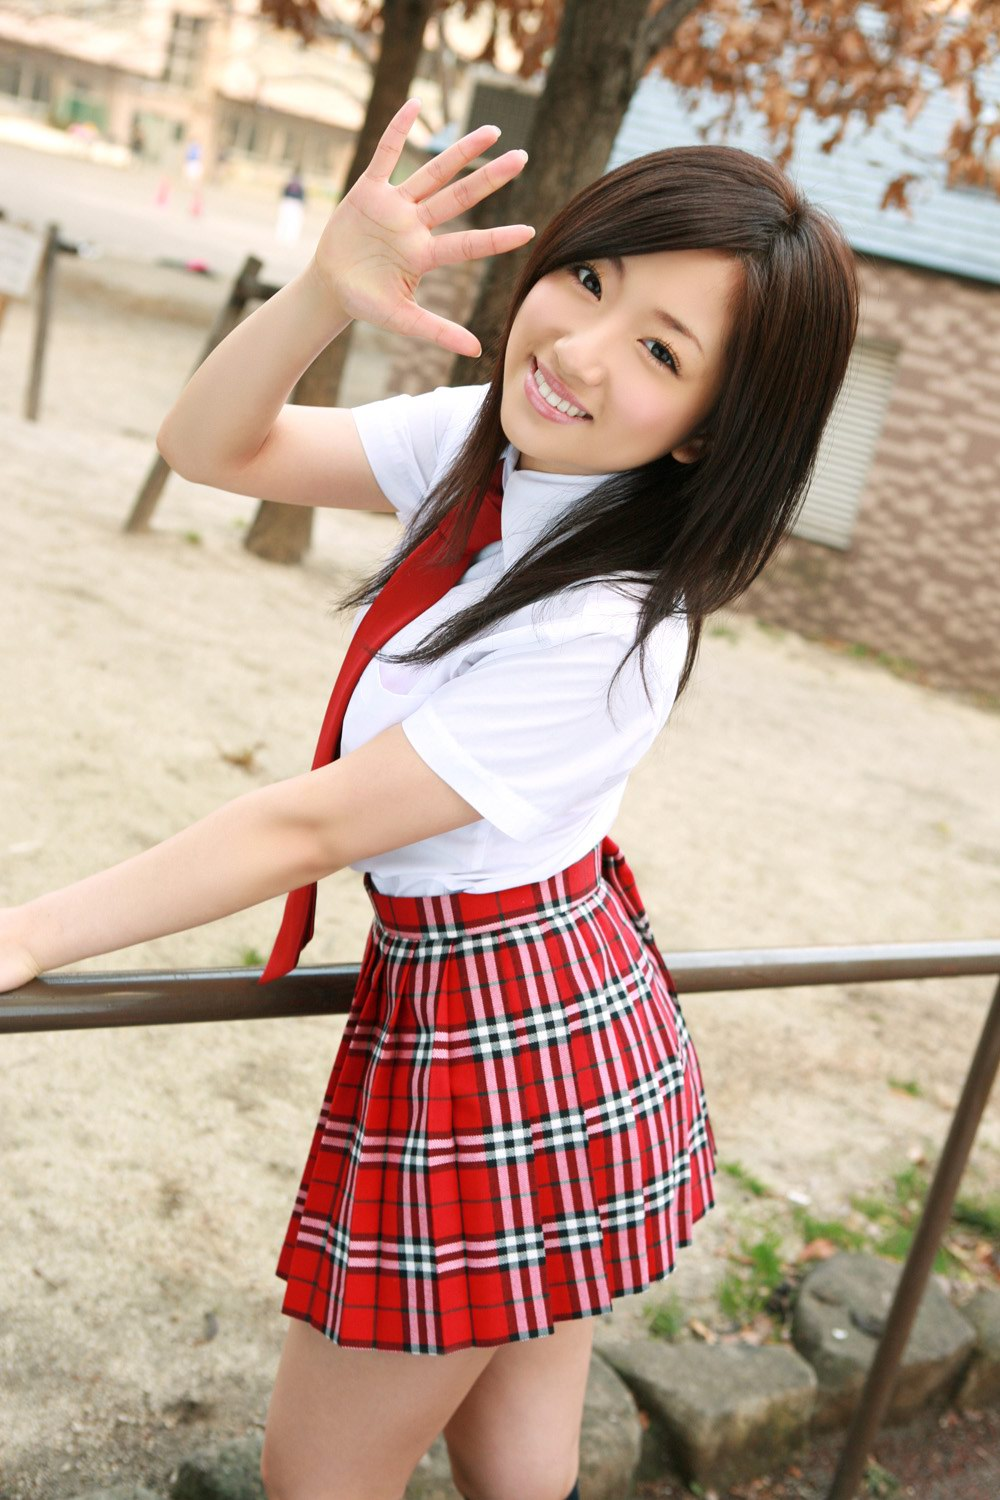 schoolgirl asian: